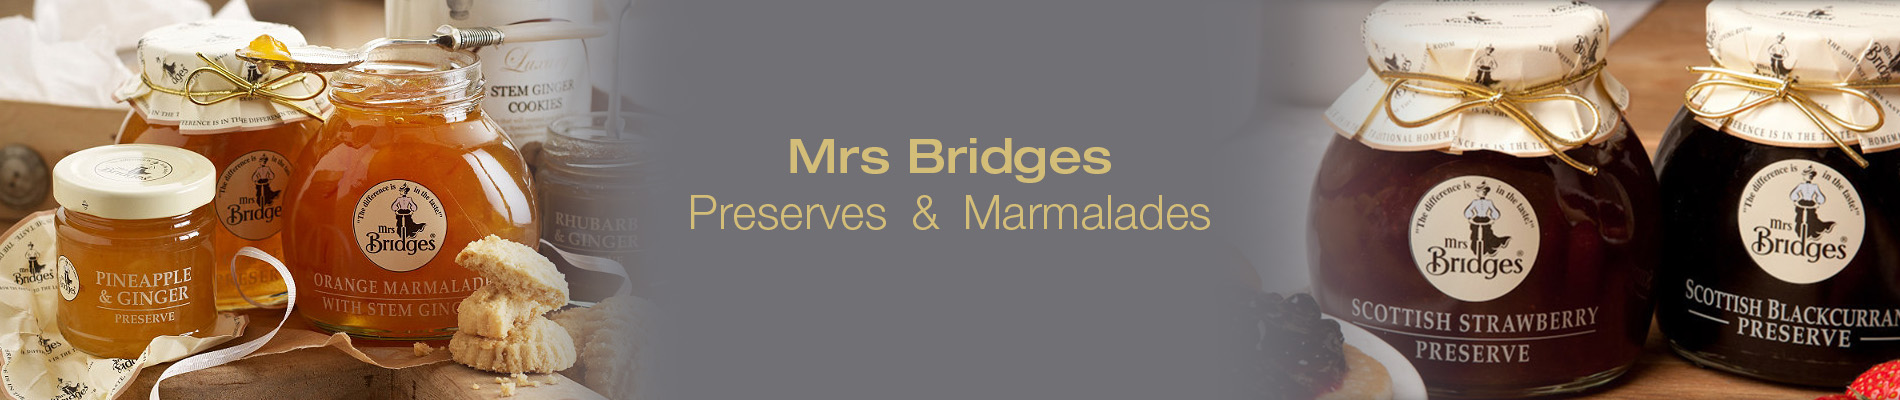 mrs-bridges-slide-3